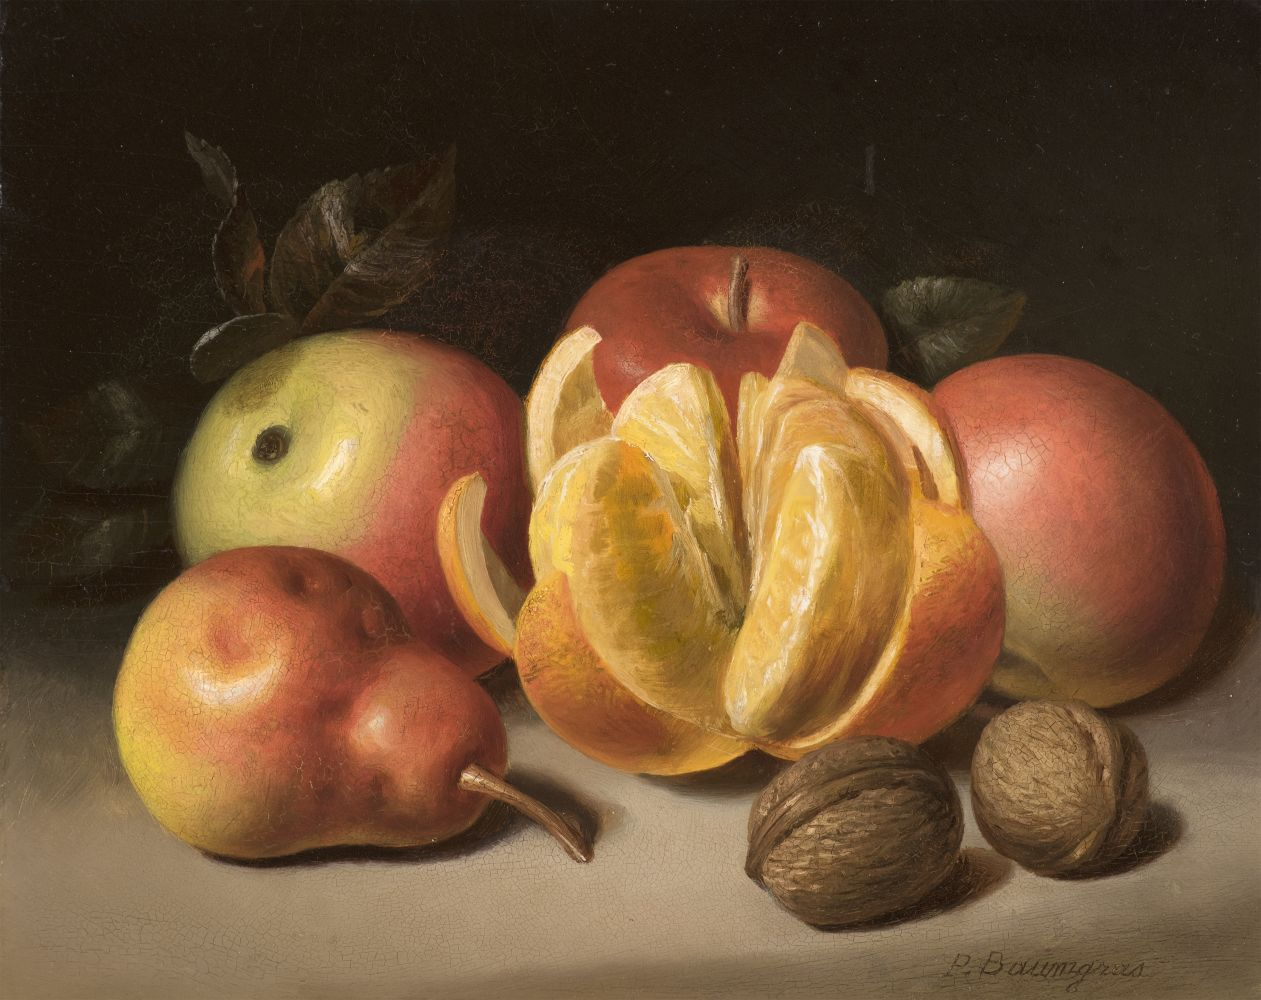 Peter Baumgras (1827–1903), Still Life: Apples, Orange, Pear and Nuts, c. 1860, oil on academy board, 8 x 10 in., signed lower right: P. Baumgras